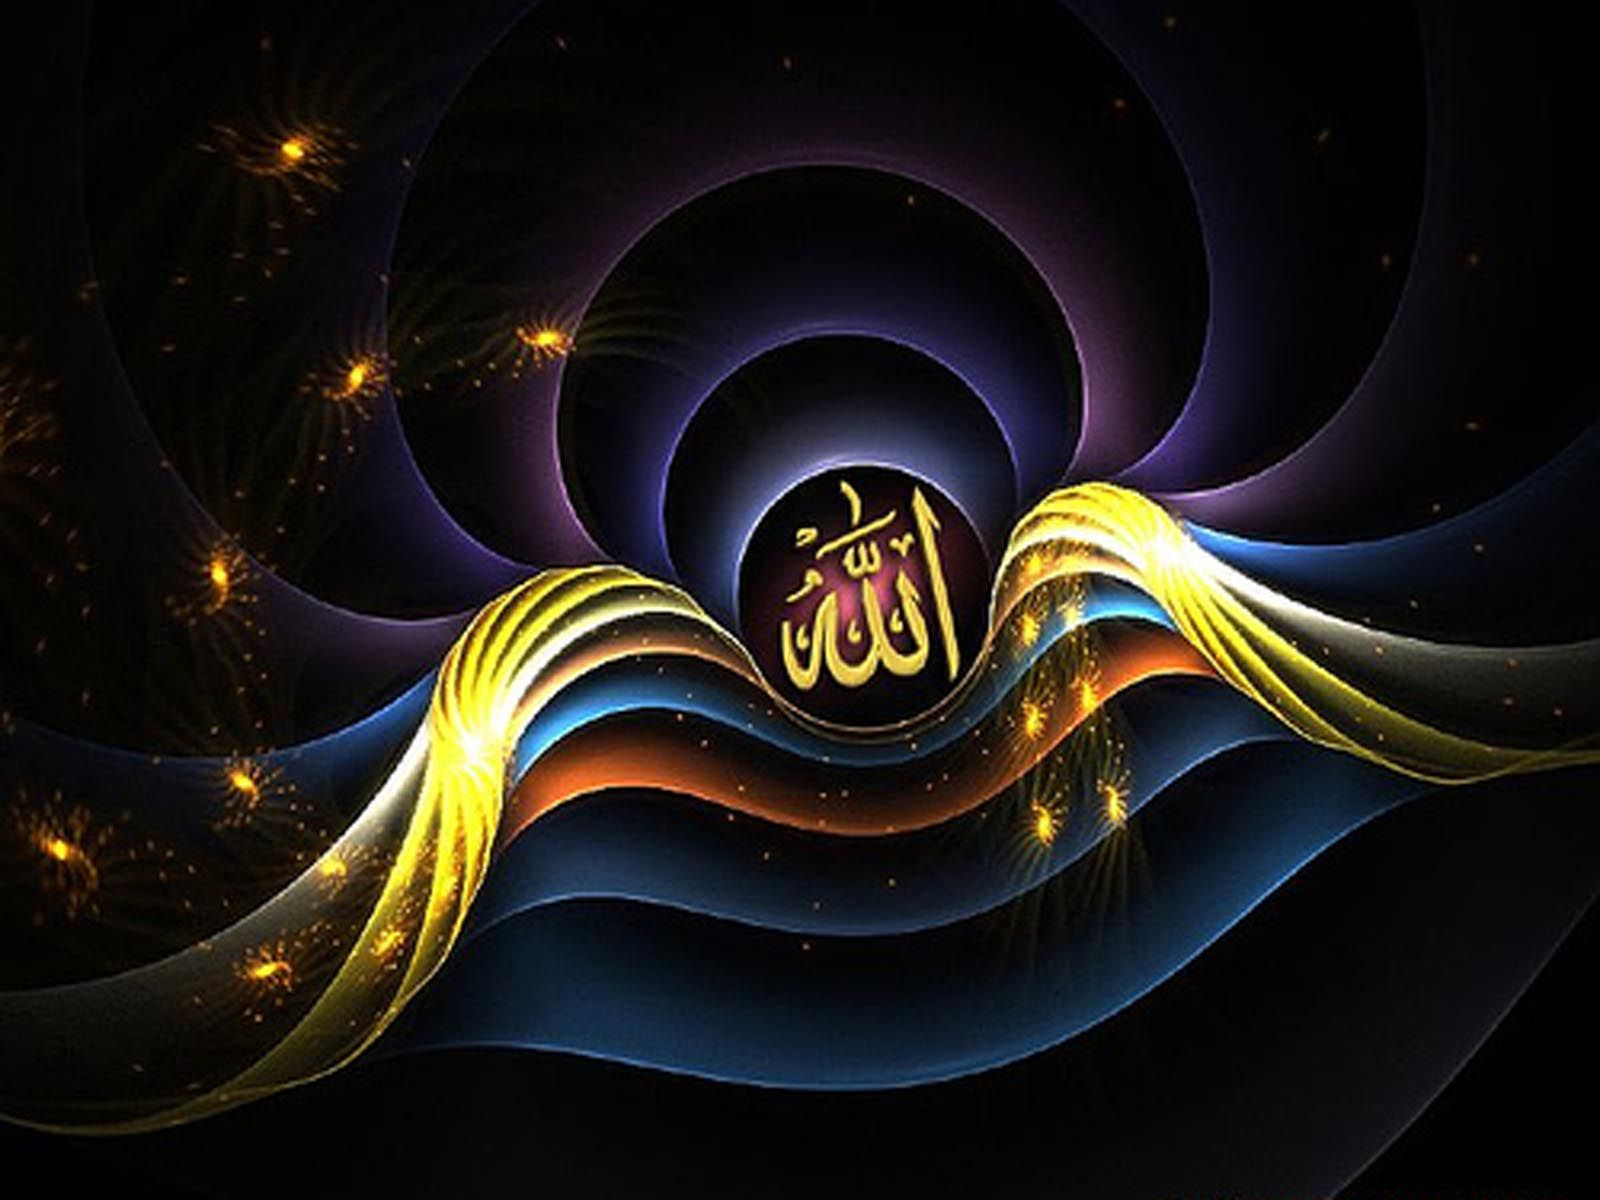 ewallpapershub provide the latest allah symbol wallpapers. you can